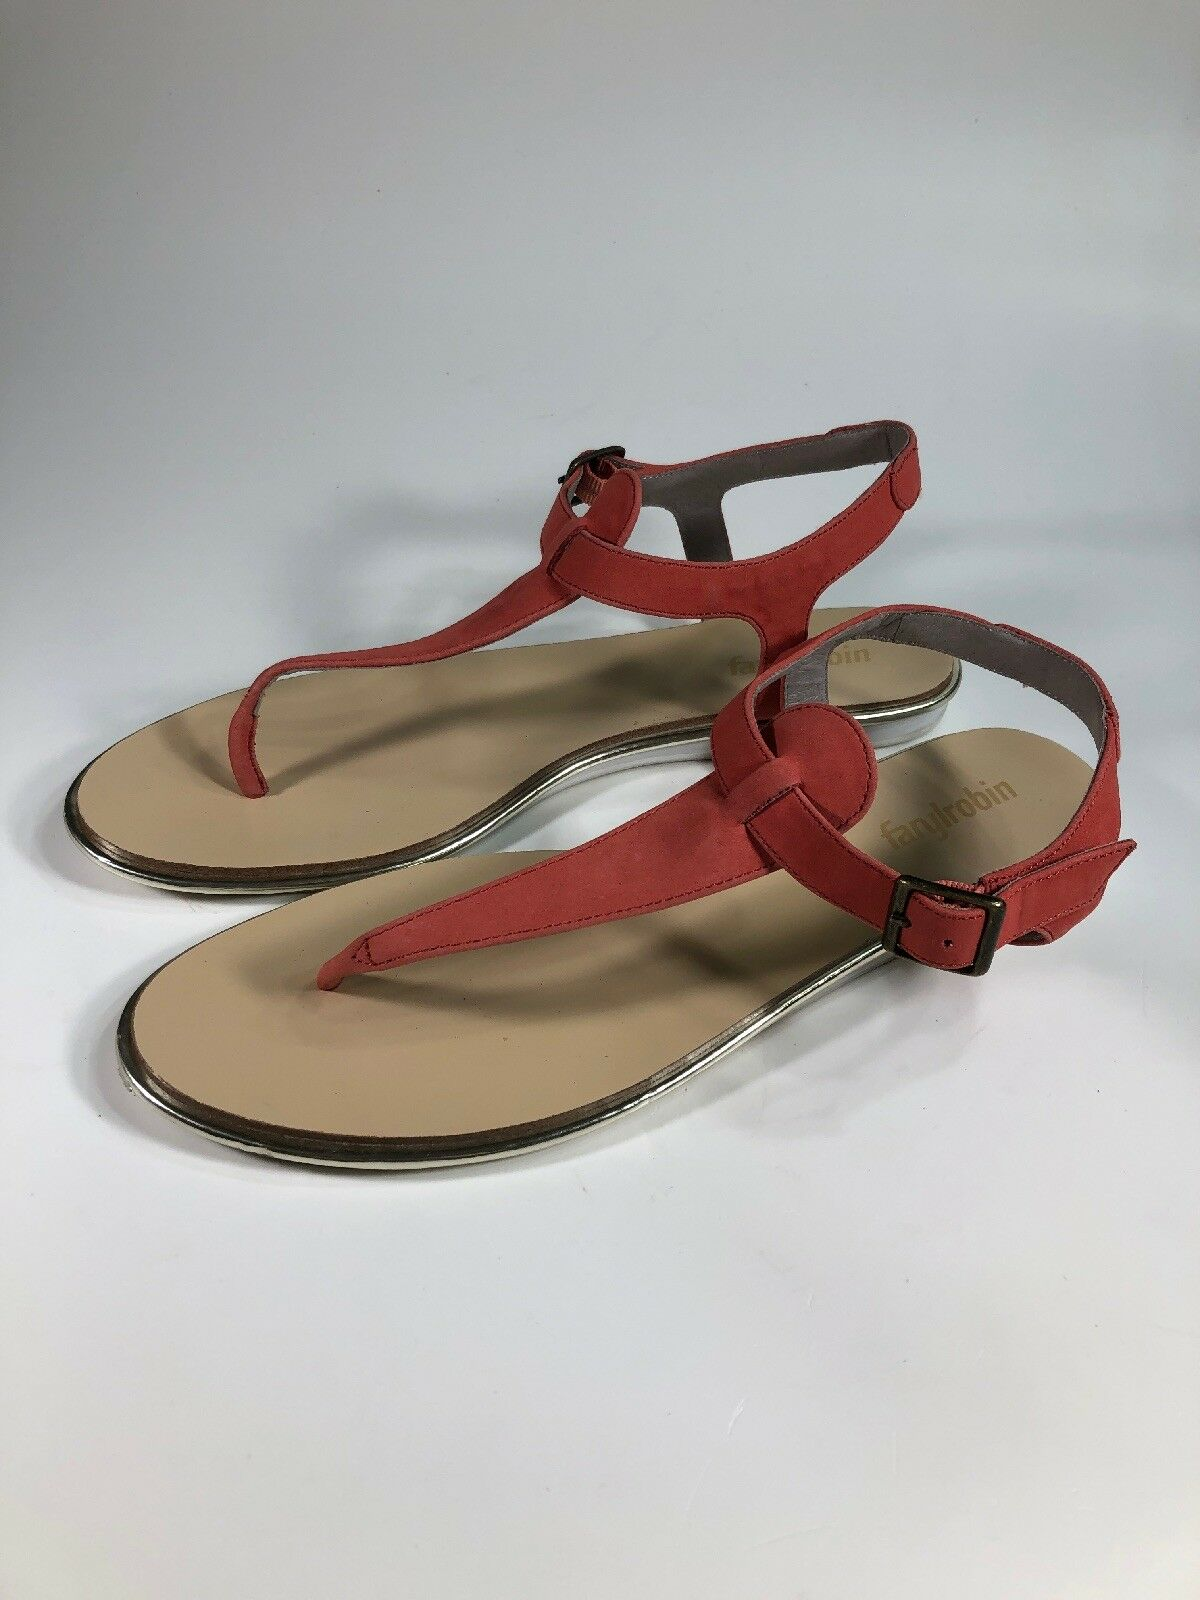 Farylrobin Anthropologie Red Nubuck Leather Ankle Strap Sandals Womens Size 10 M